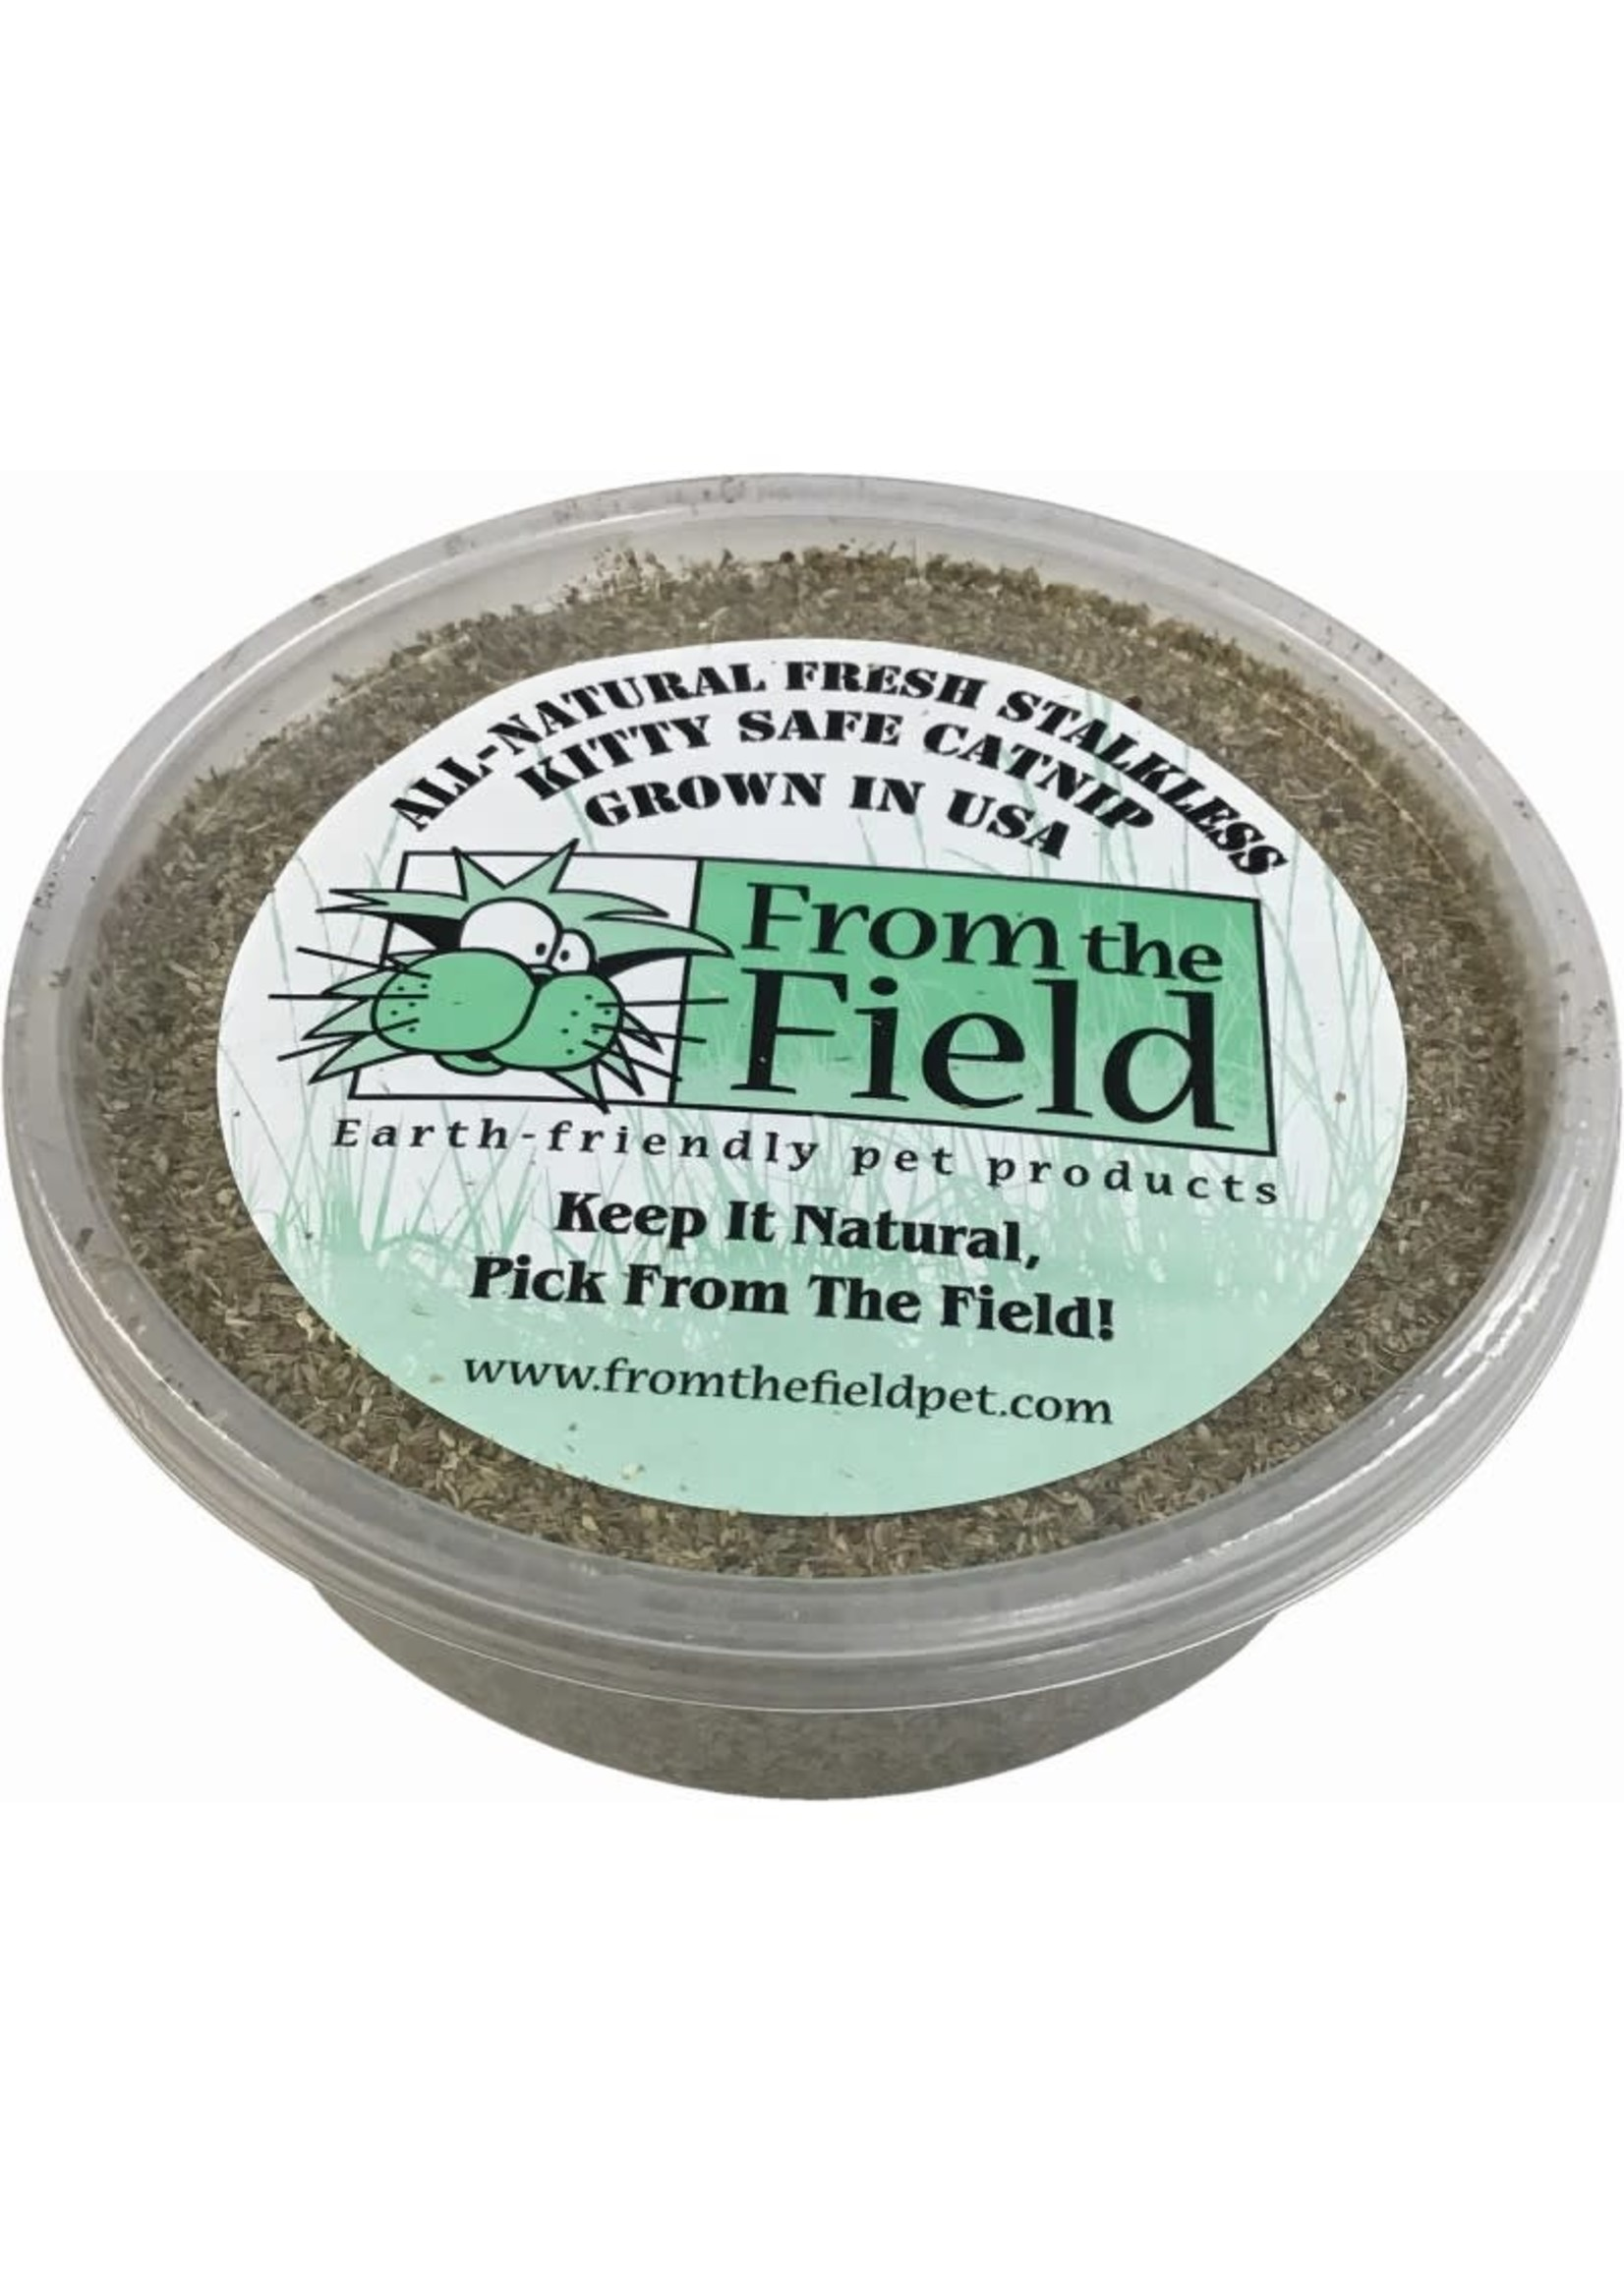 From The Field From The Field Catnip Stalkless Tub 2oz